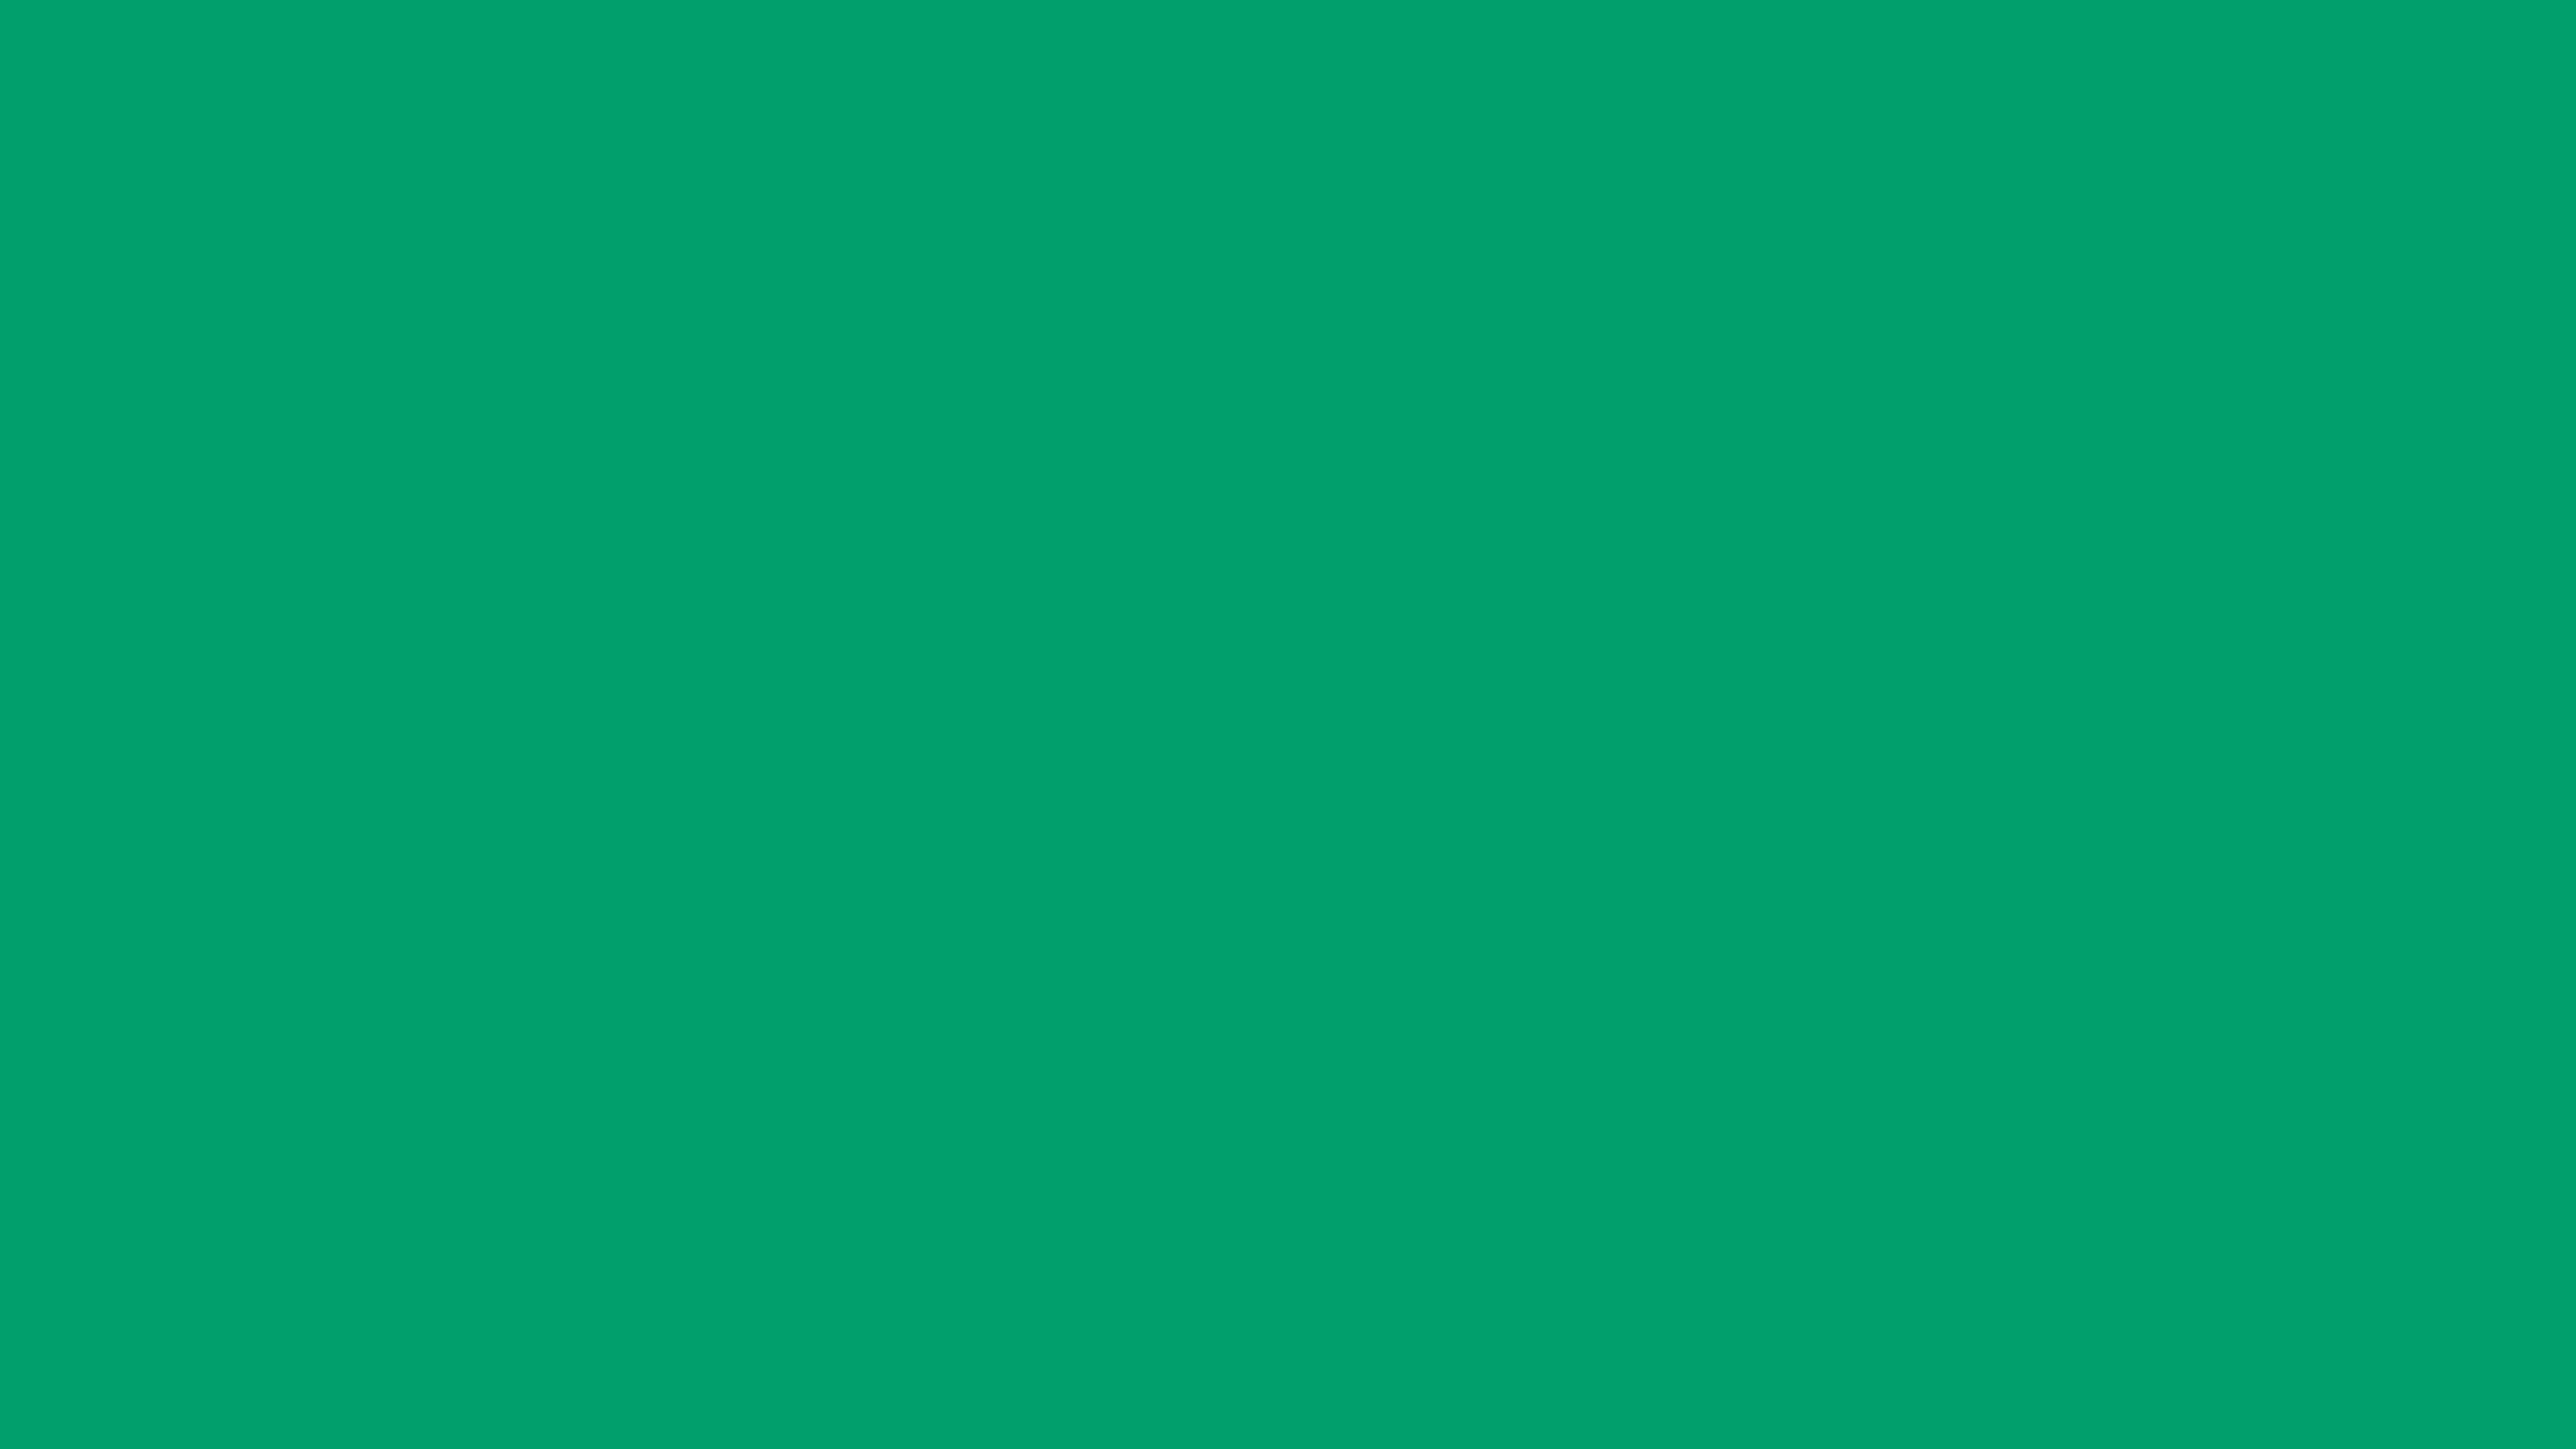 3840x2160 Green NCS Solid Color Background